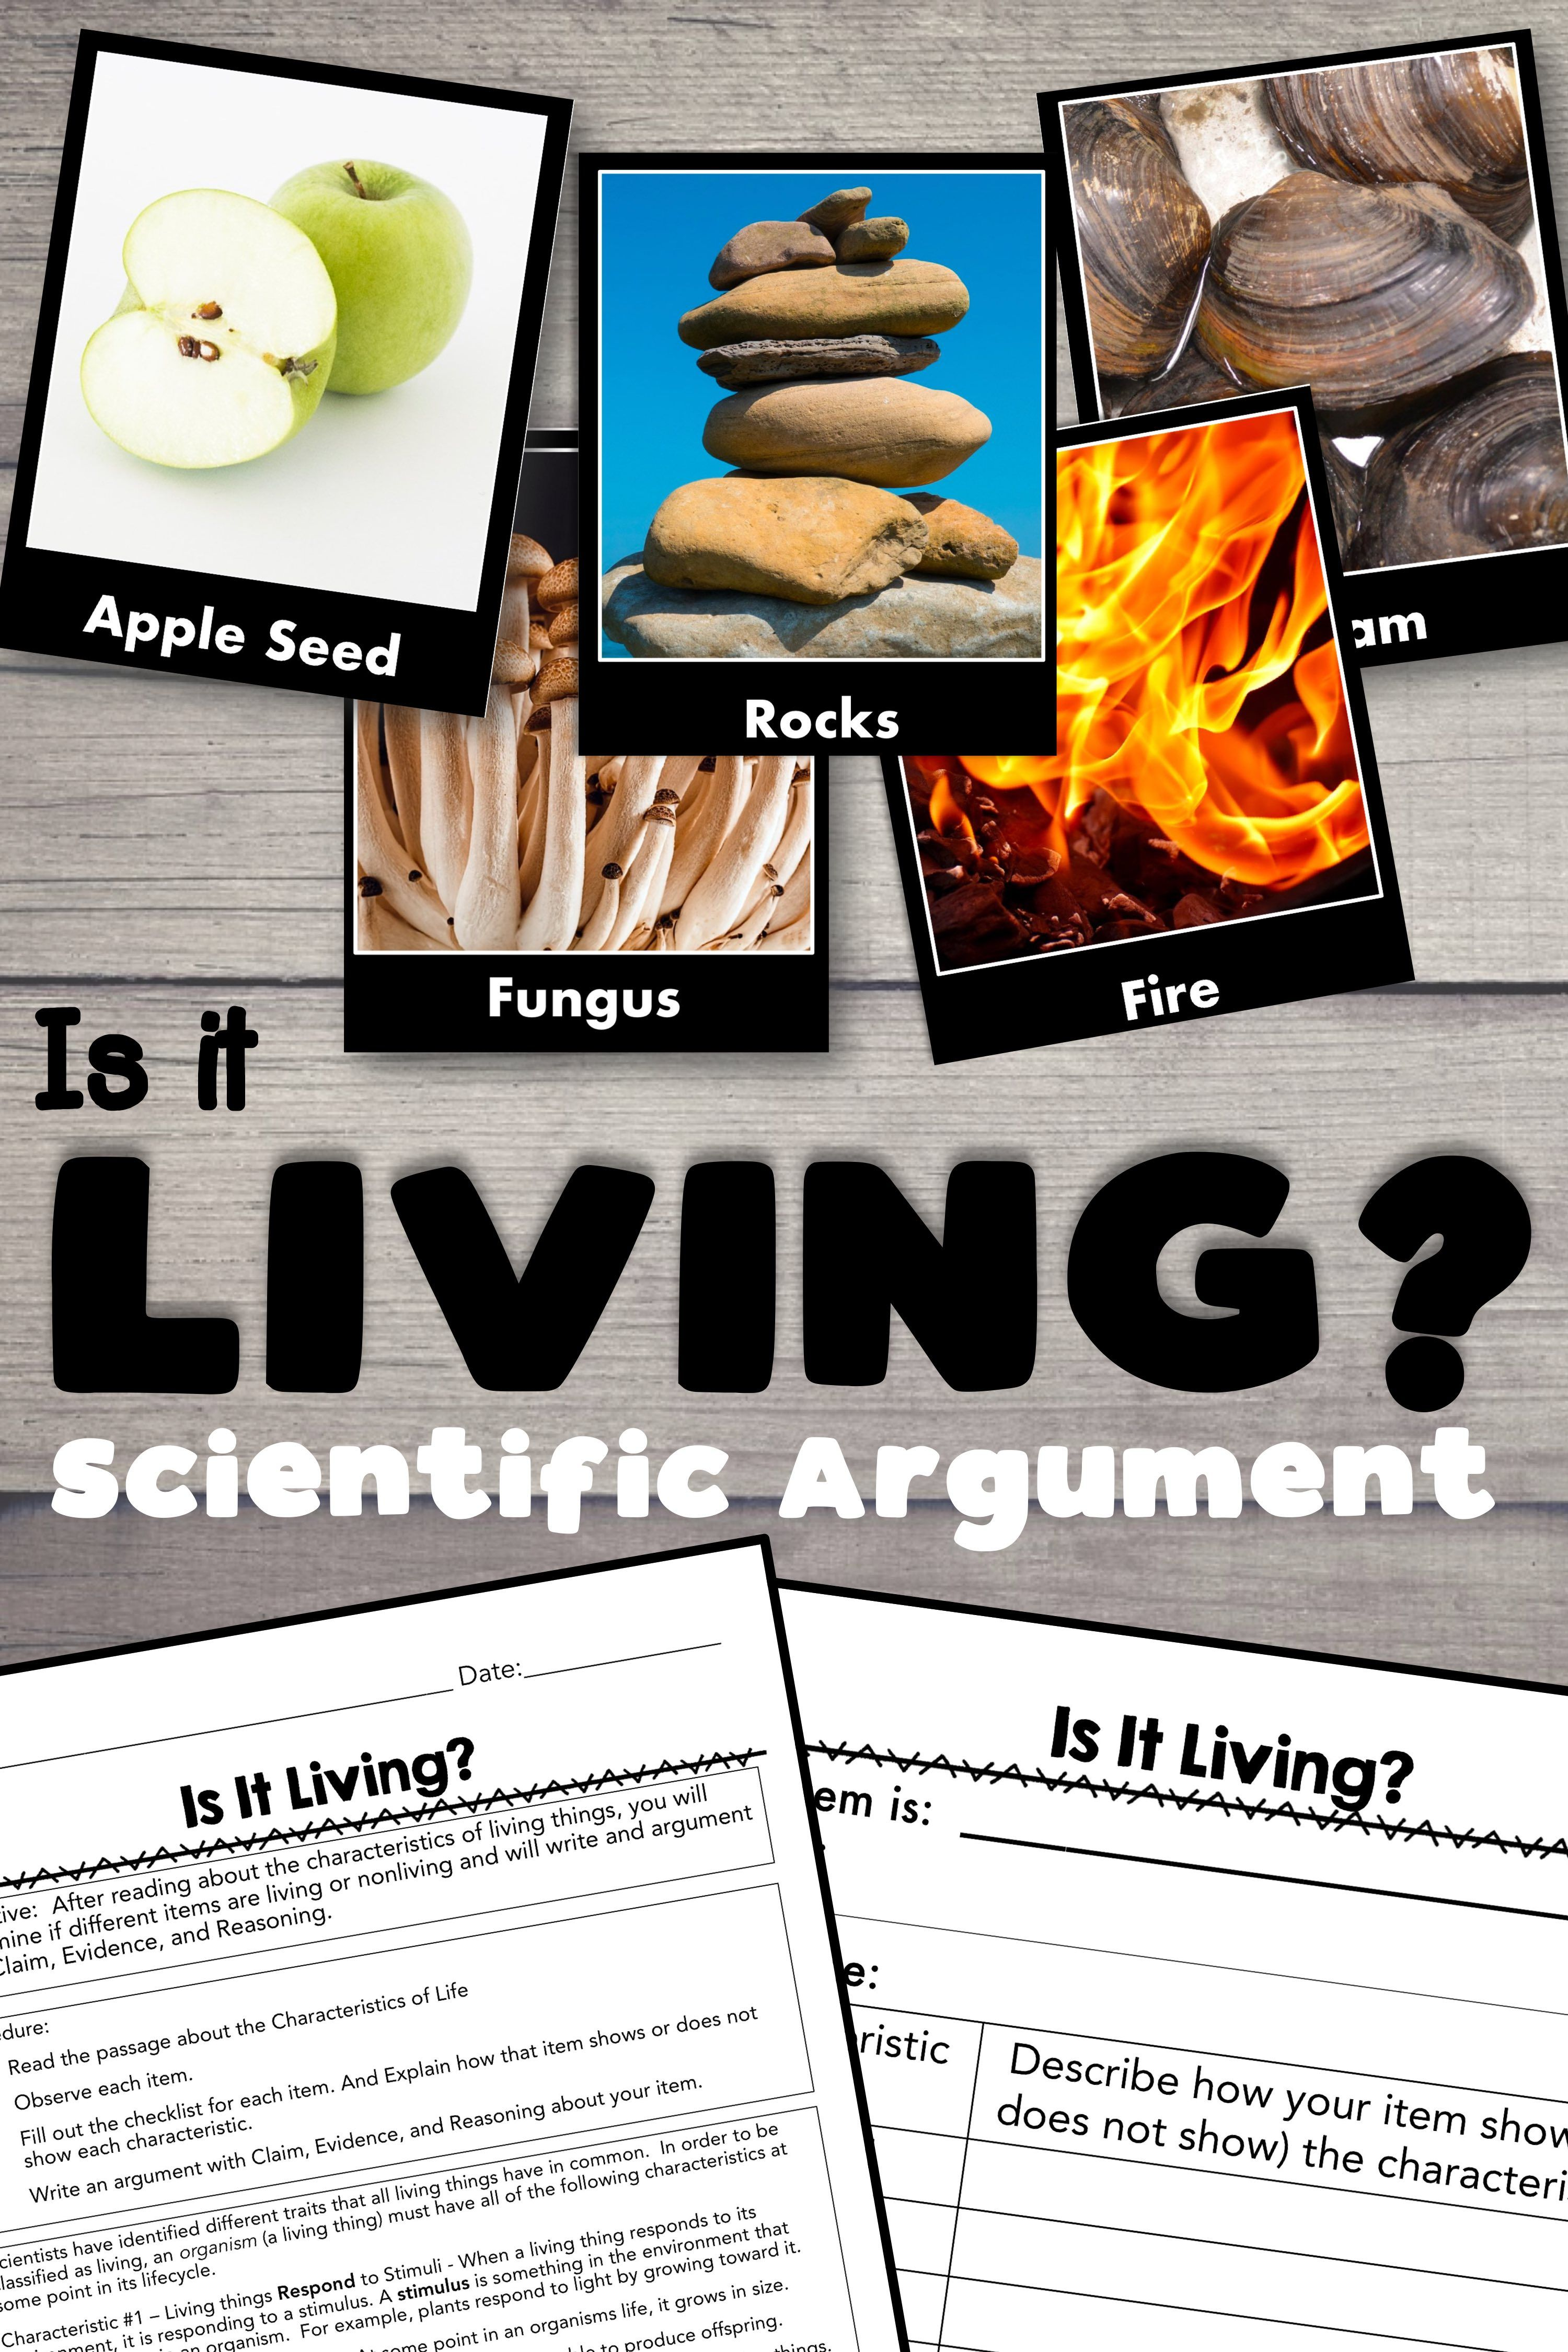 Characteristics Of Life Scientific Argument With Claim